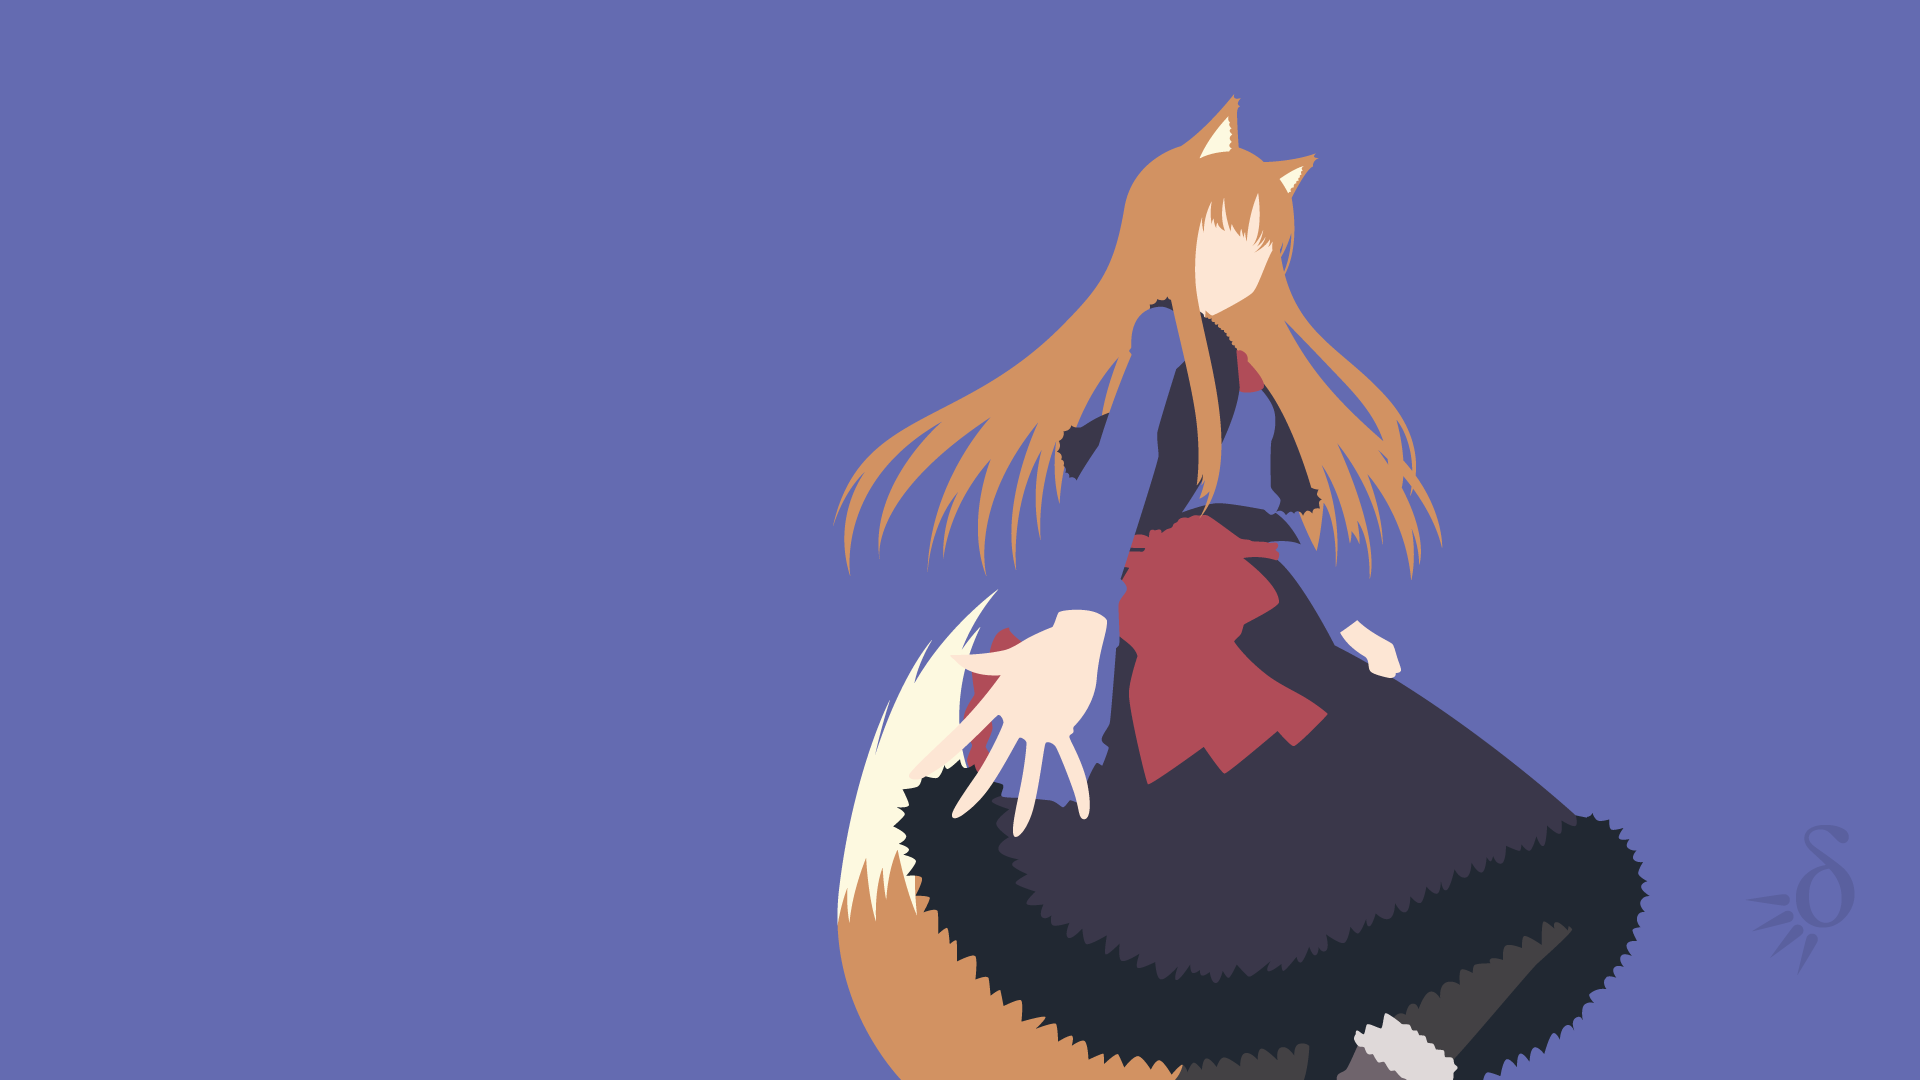 holo and lawrence dancing love Spice and Wolf Wallpaper